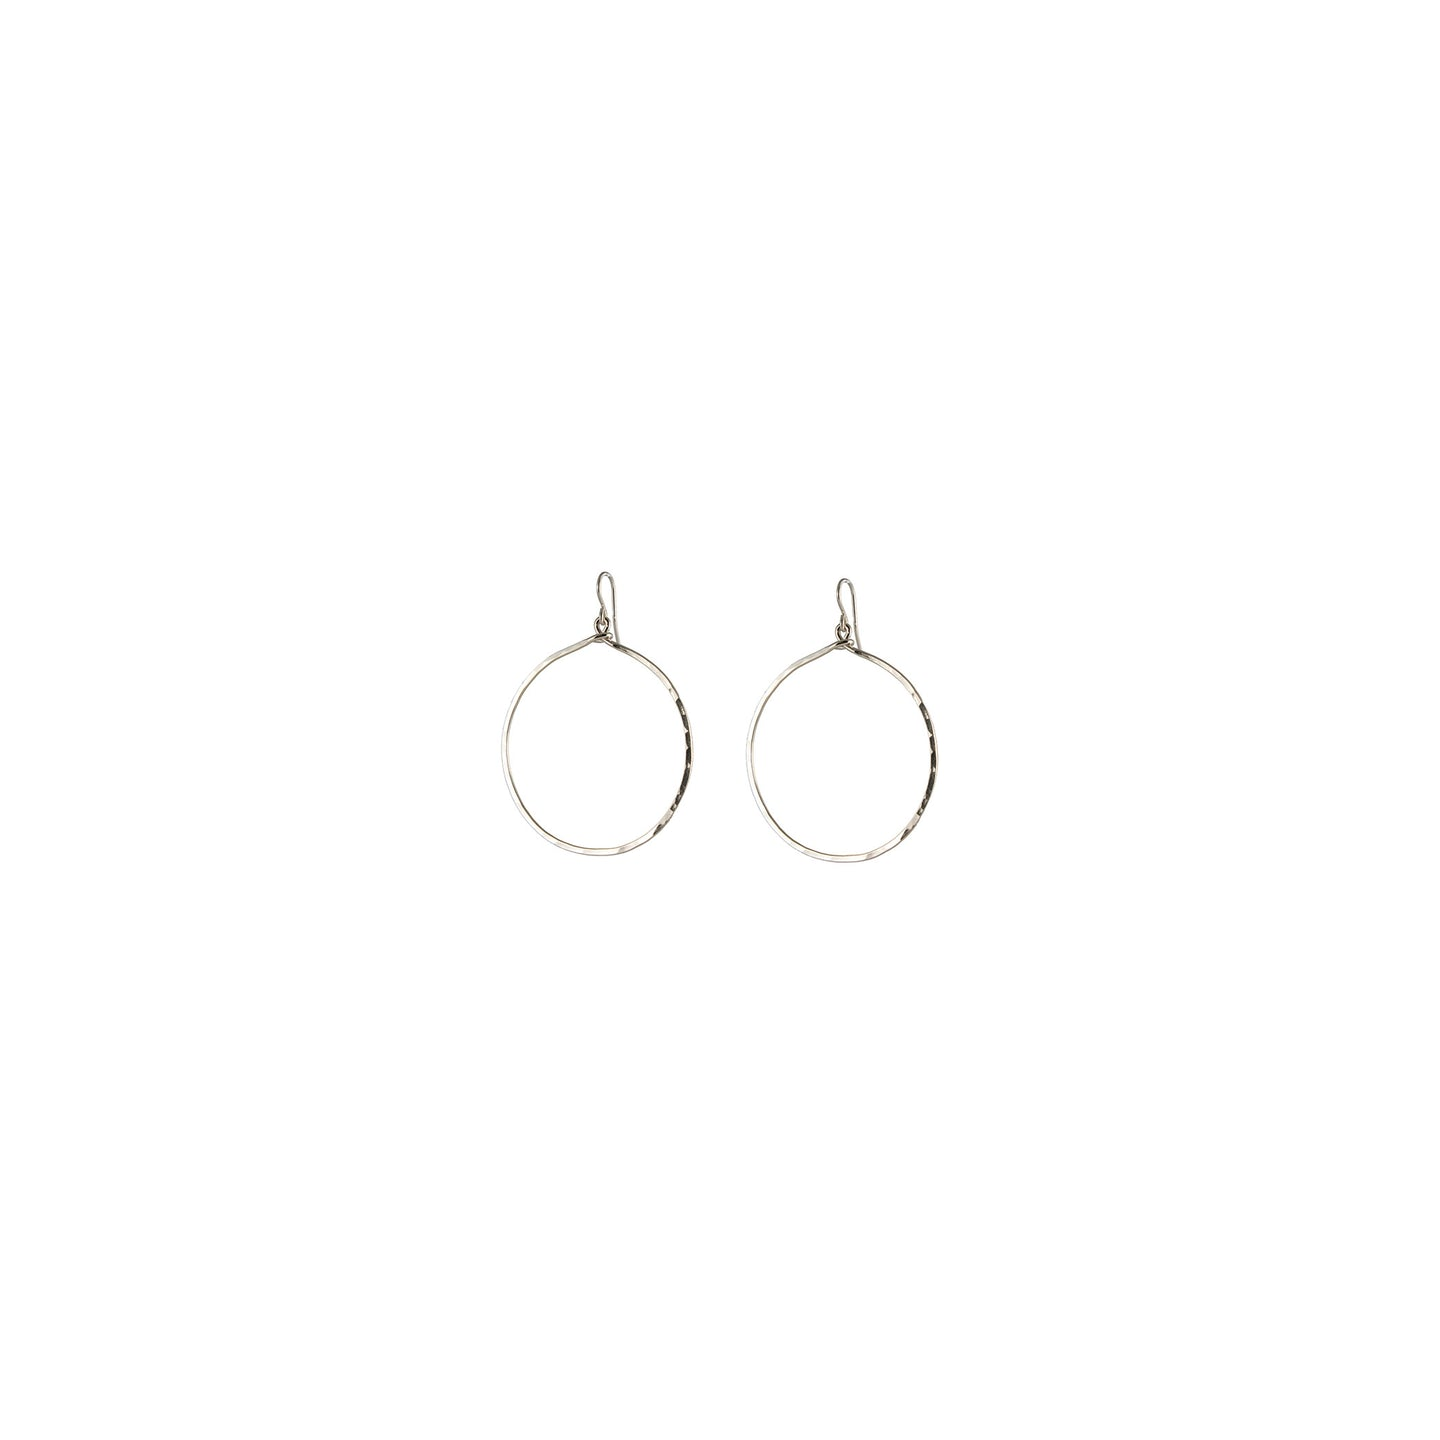 Mini Loop Earrings